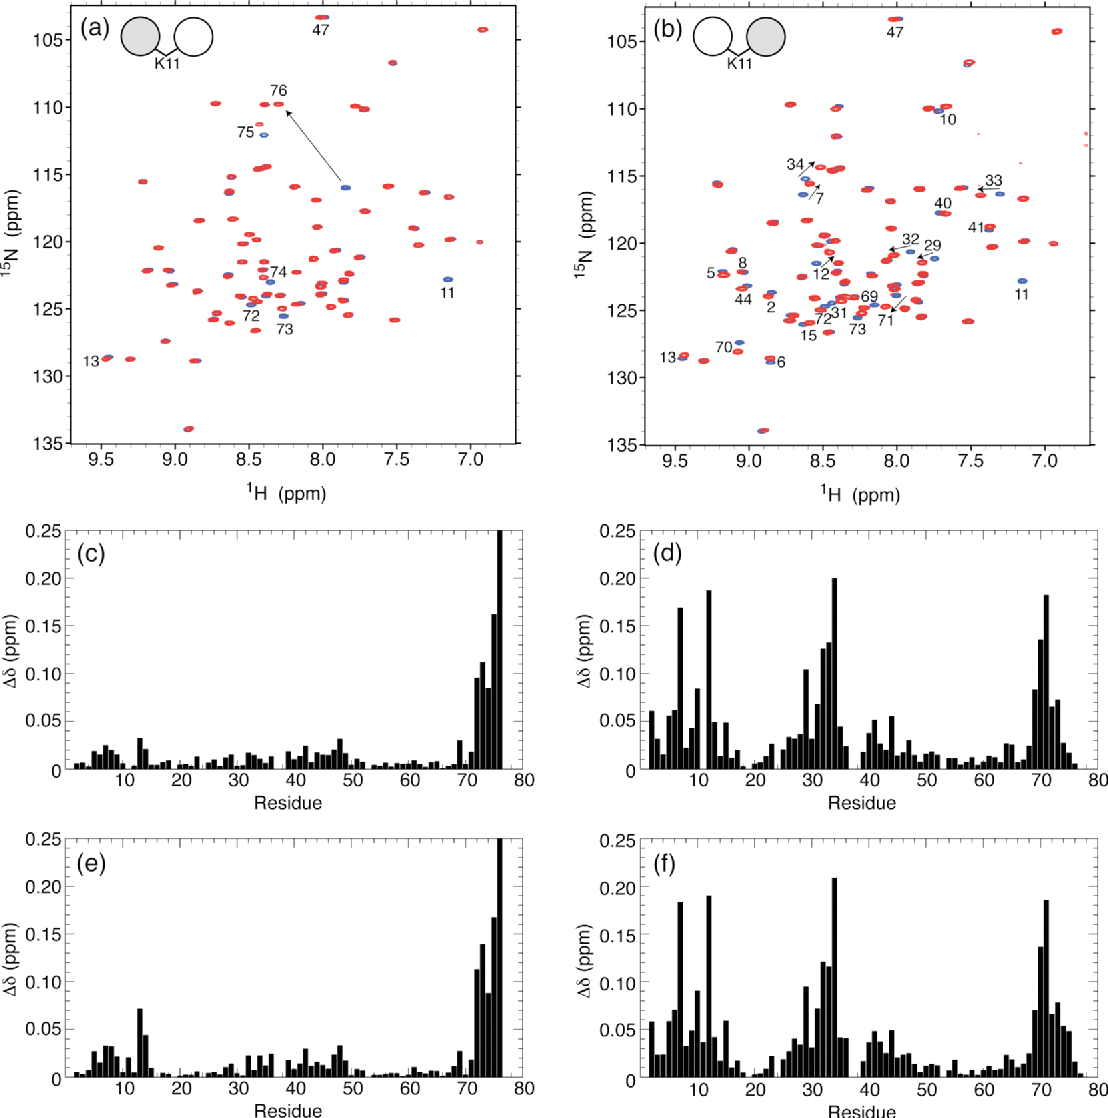 Figure 4. Overlay of 1H 15N TROSY-HSQC spectra of (a) the distal Ub and (b) the proximal Ub in all-natural K11-linked Ub2 (red) and of WT Ub (blue). The spectral differences between K11-linked di-Ub and mono-Ub, quantified as amide chemical shift perturbations (CSPs), are plotted as a function of the residue number for (c,e) distal Ub and (d,f) proximal Ub in (c,d) all-natural K11-linked Ub2 and (e,f) enzymatically synthesized K11linked Ub2. The CSPs were calculated as Δδ = [(ΔδH) 2 + (ΔδN/5) 2]1/2, where ΔδH and ΔδN are chemical shift differences for 1H and 15N, respectively. Residues with significant CSPs are indicated on the spectra in panels a and b. Note that the absence of the K11 backbone amide signal in the spectra of K11-linked Ub2 (panels a and b) serves as a direct confirmation of the incorporation of the unlabeled Lys at residue 11.